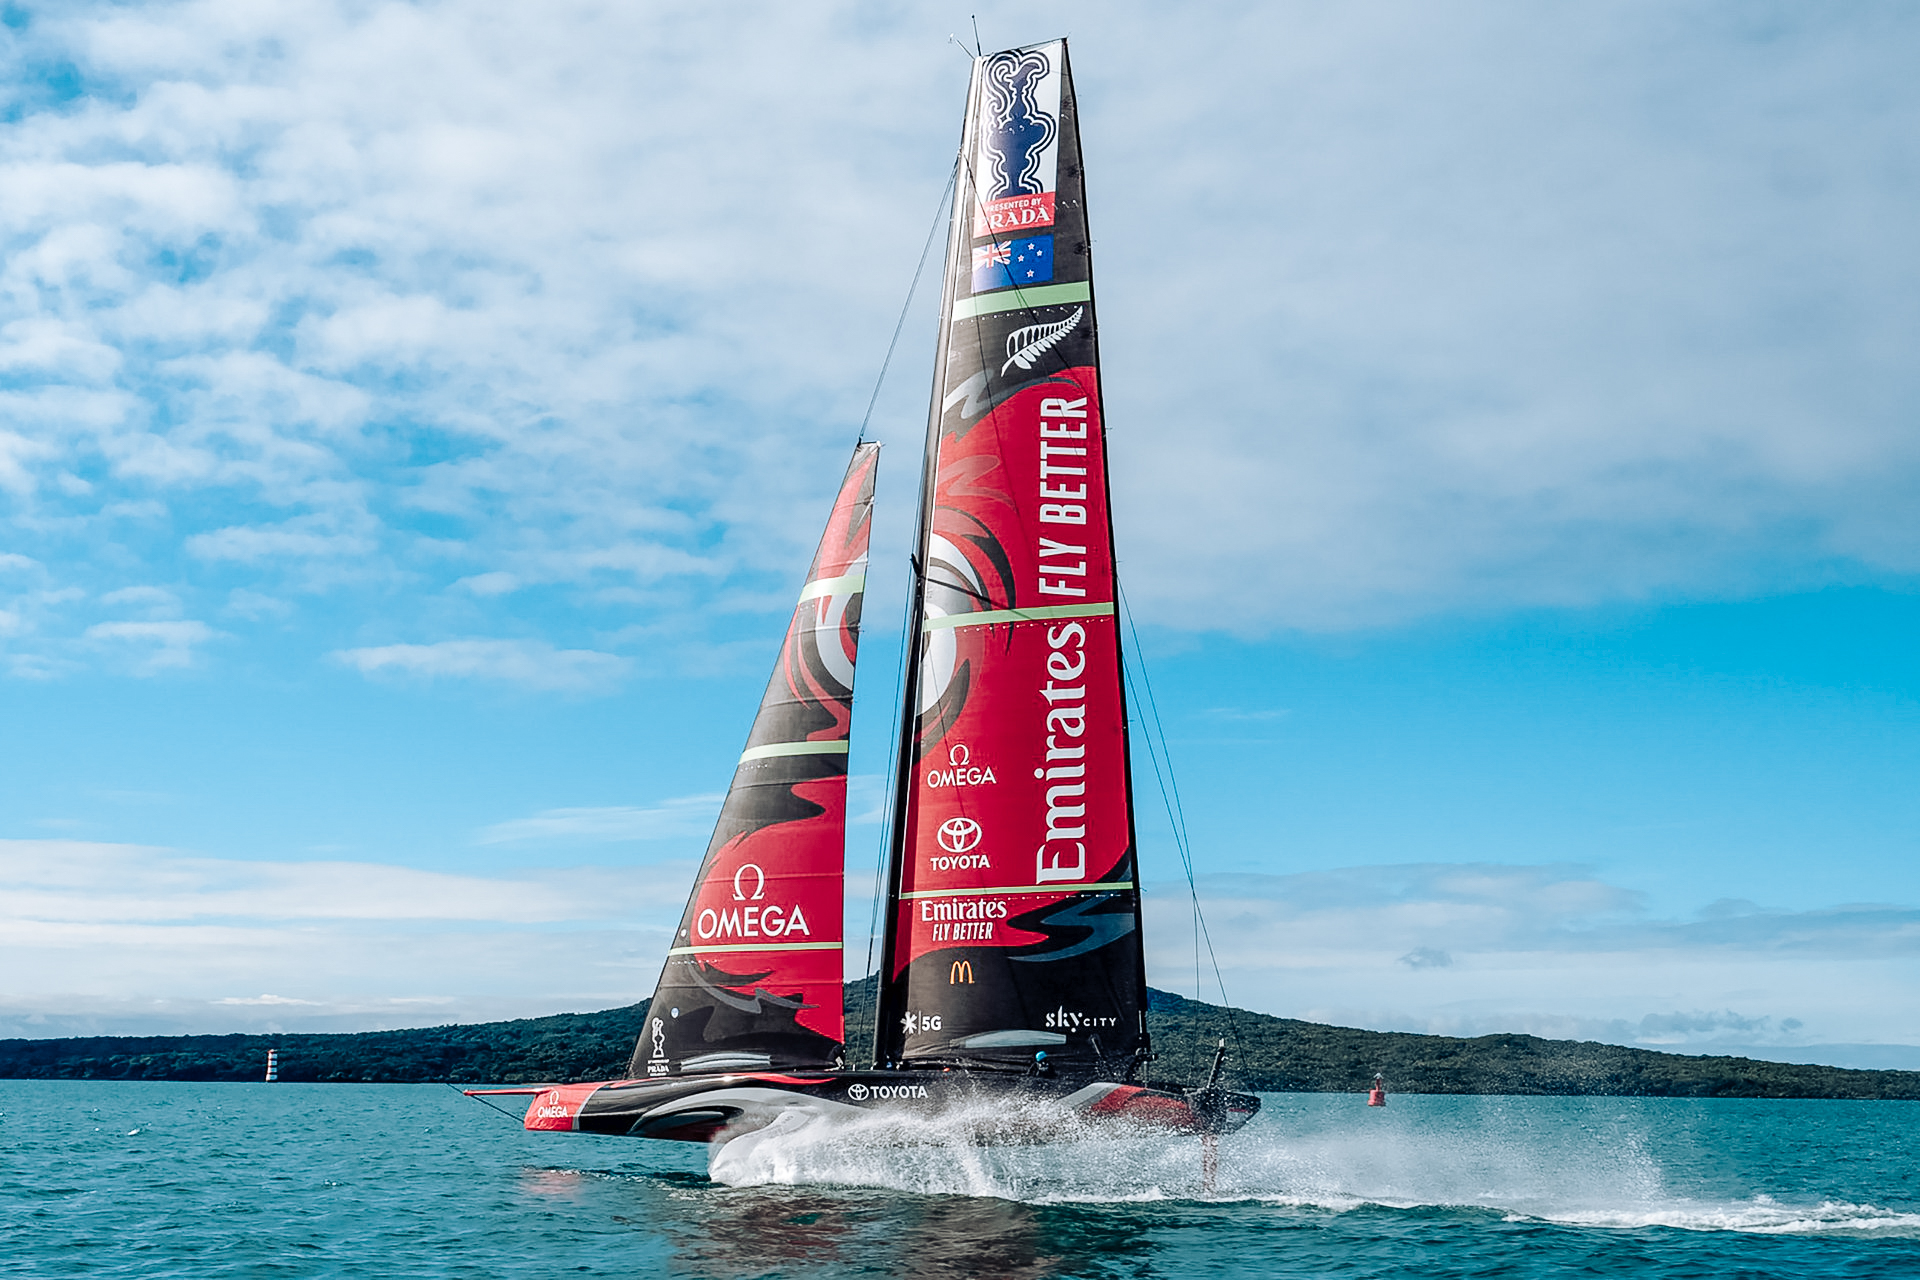 Yachts for Charter Over the 36th America's Cup